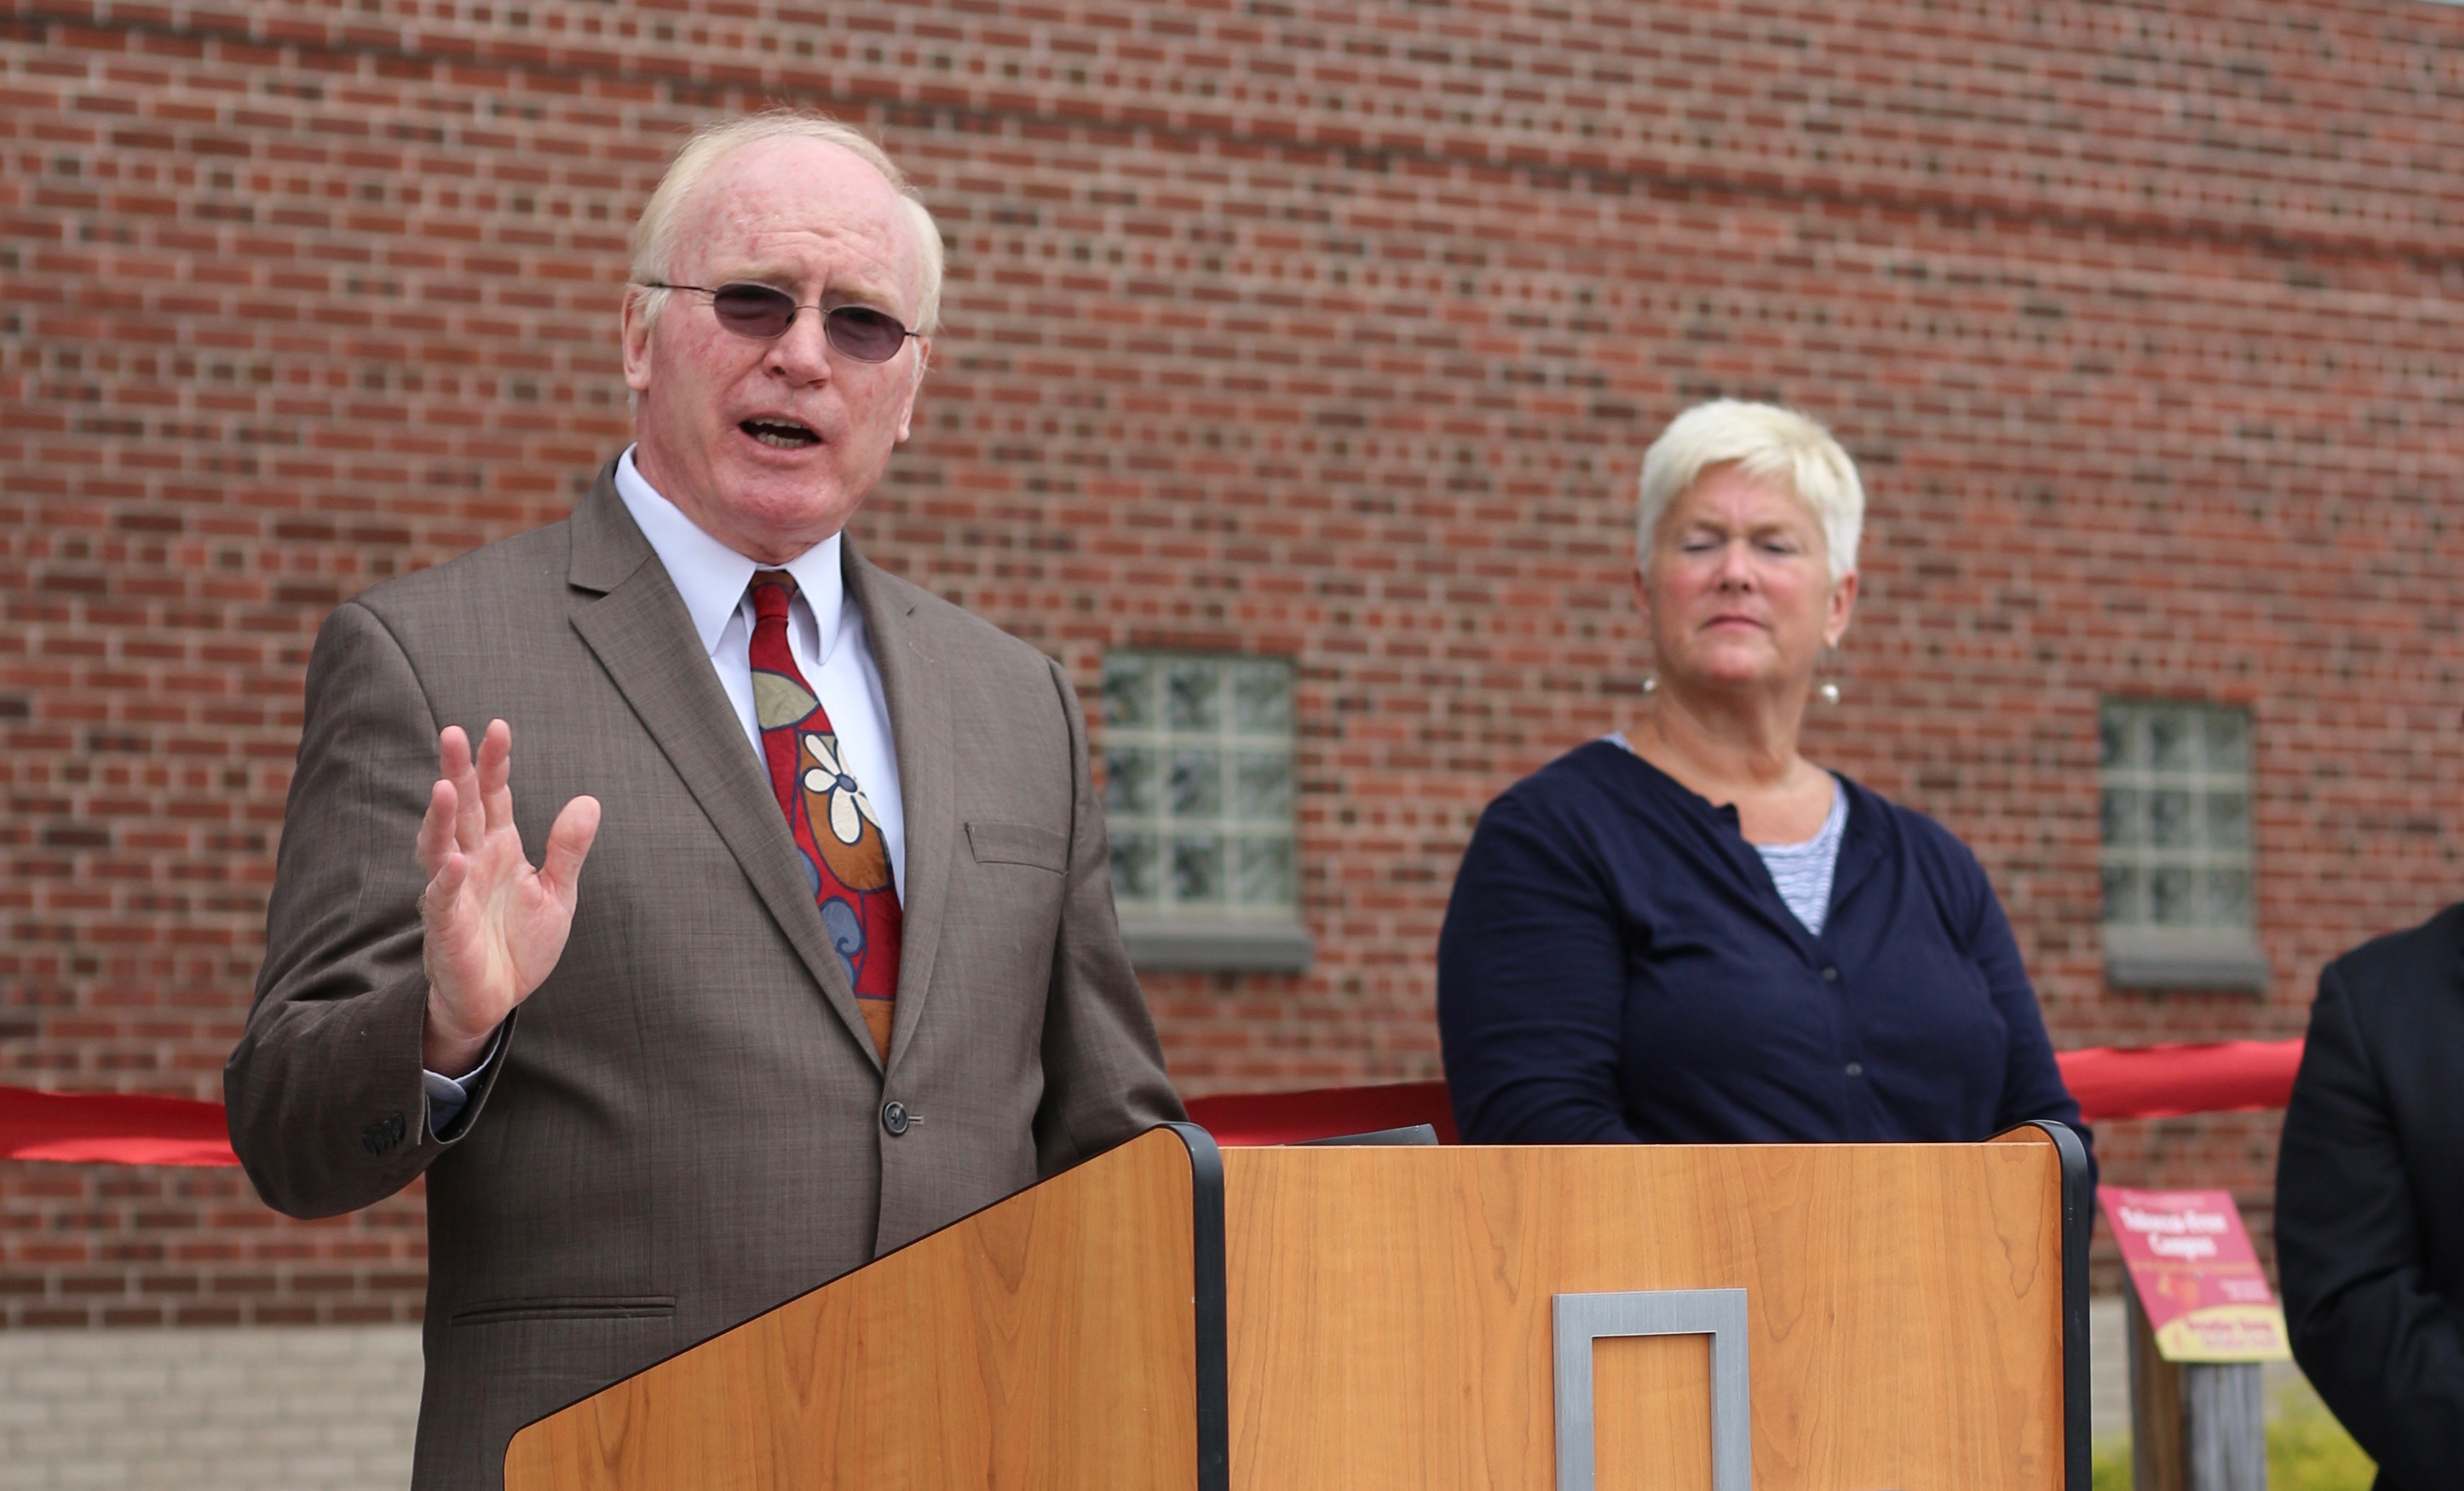 Kevin Mullin, The Chair Of The Green Mountain Care Board, Speaks At Rutland  Regional Medical Center. File Photo By Erin Mansfield/VTDigger